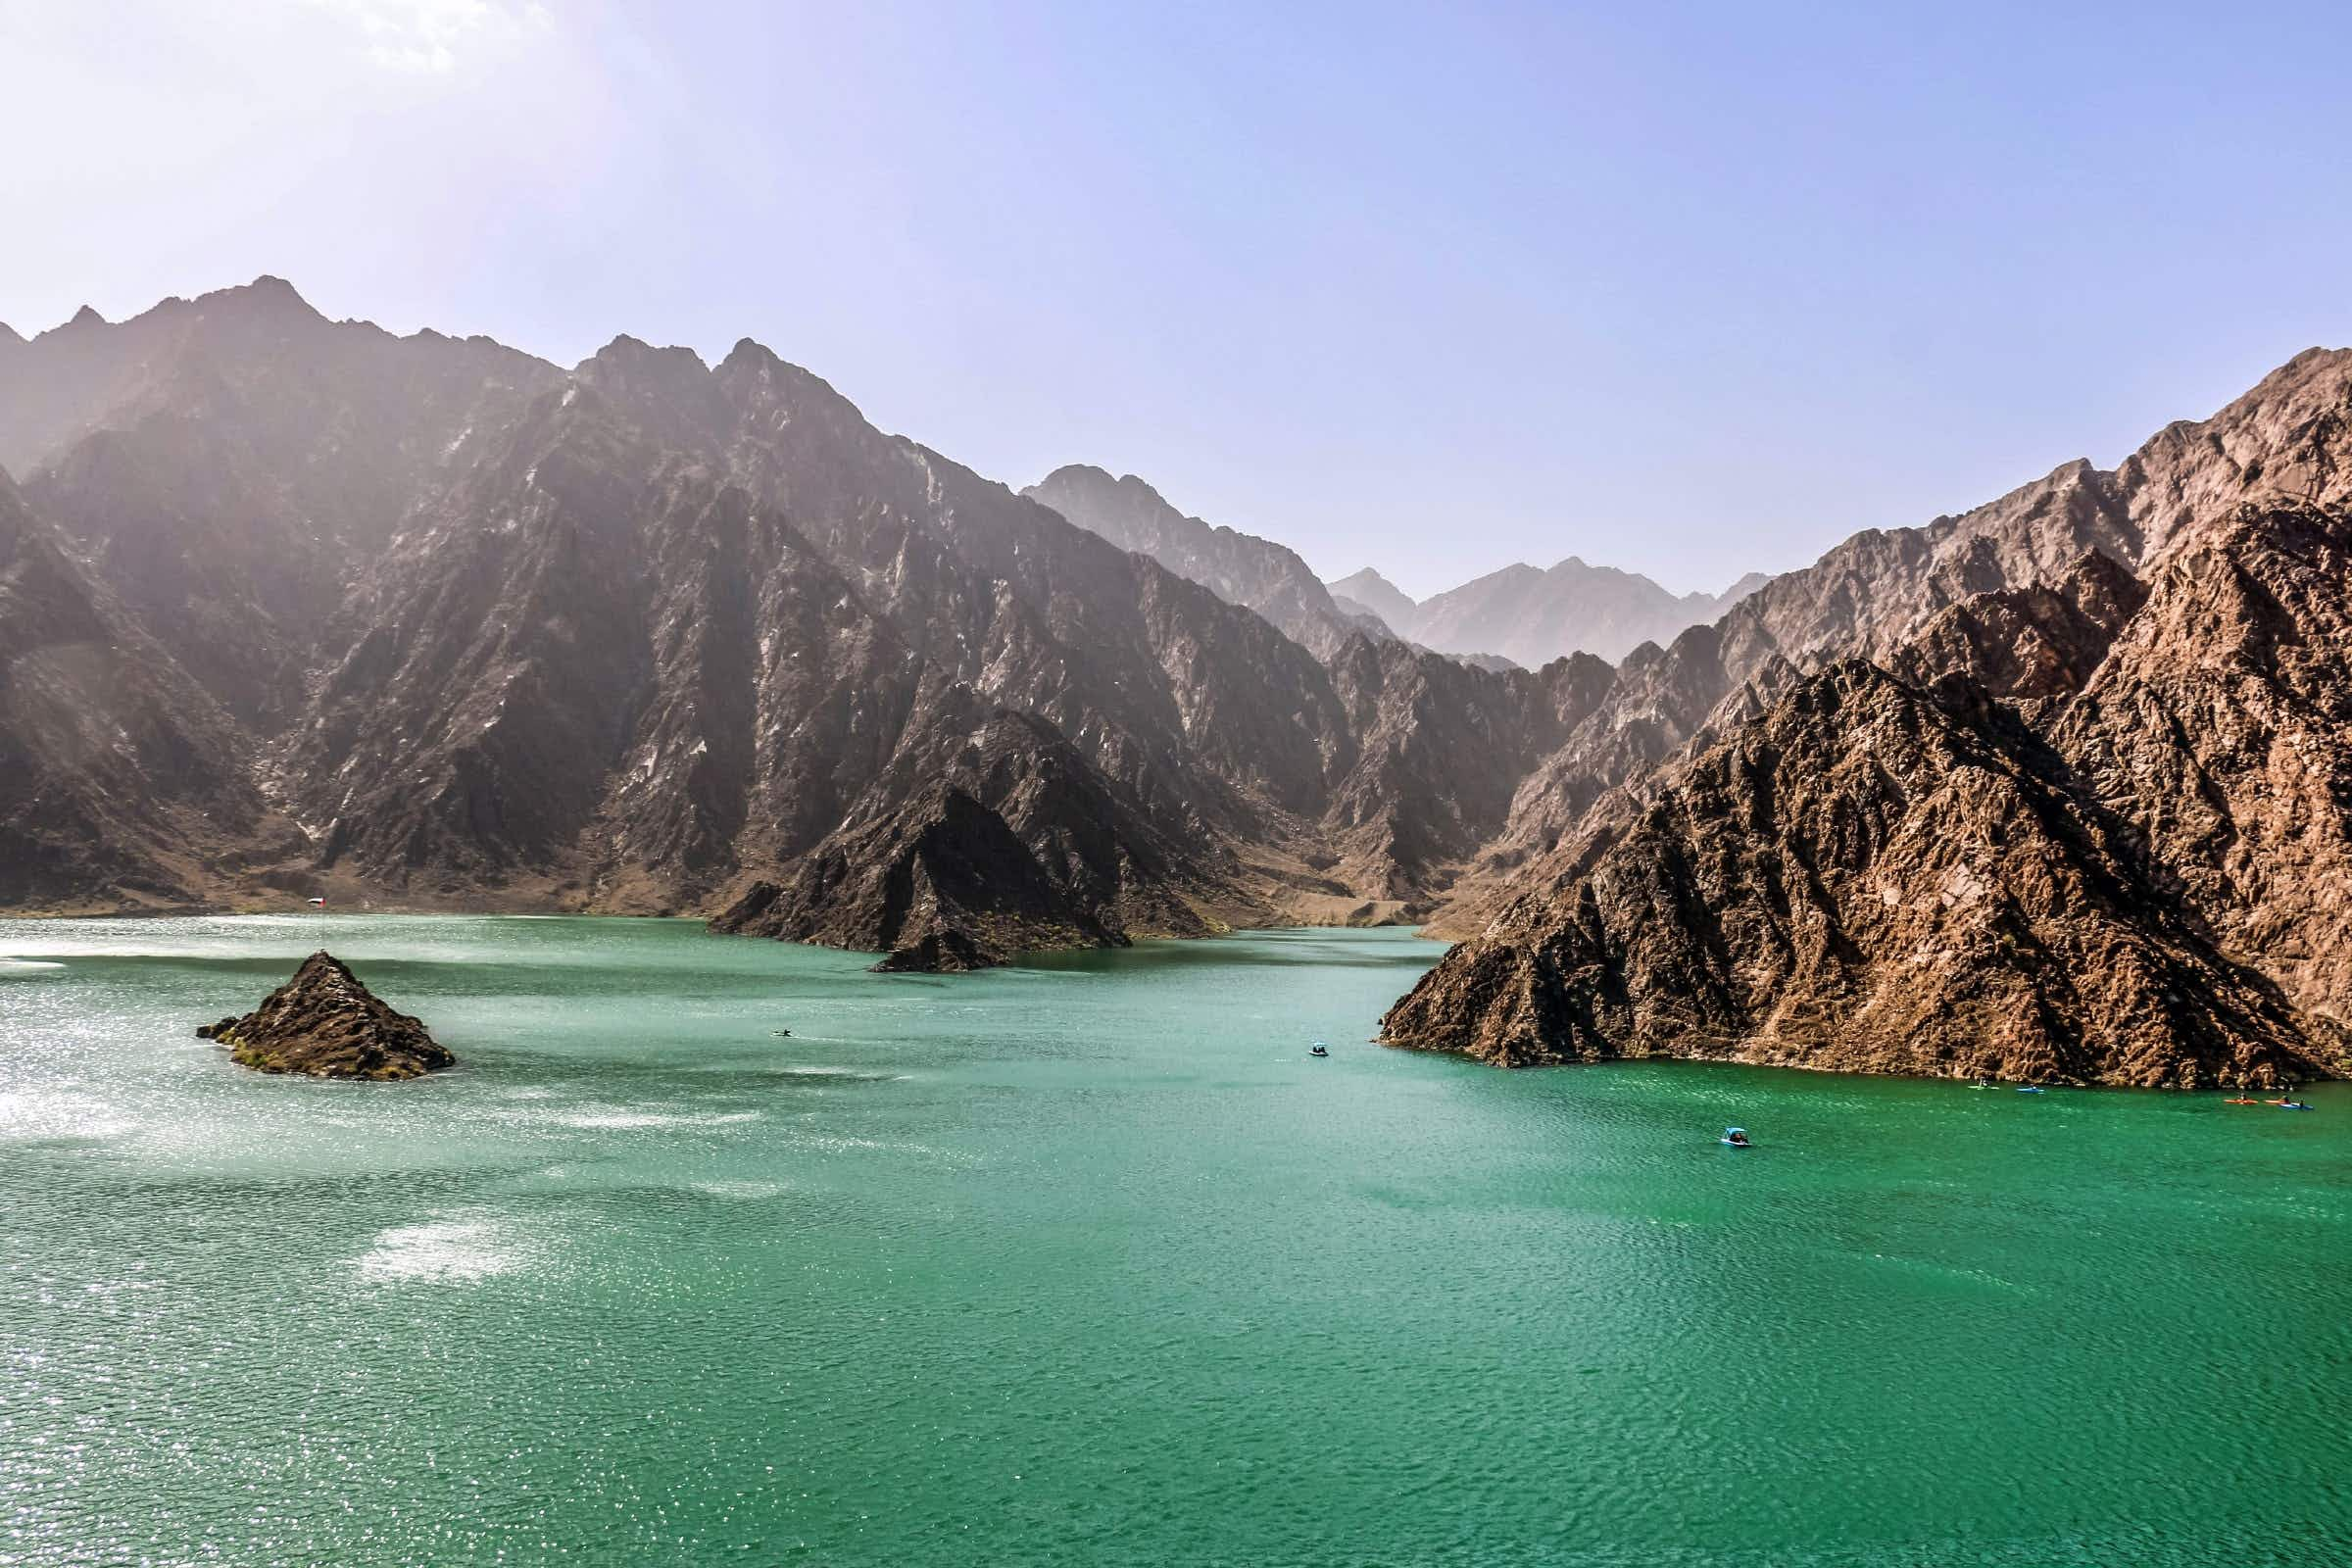 The UAE is turning mountainous spot into a new eco-tourism destination